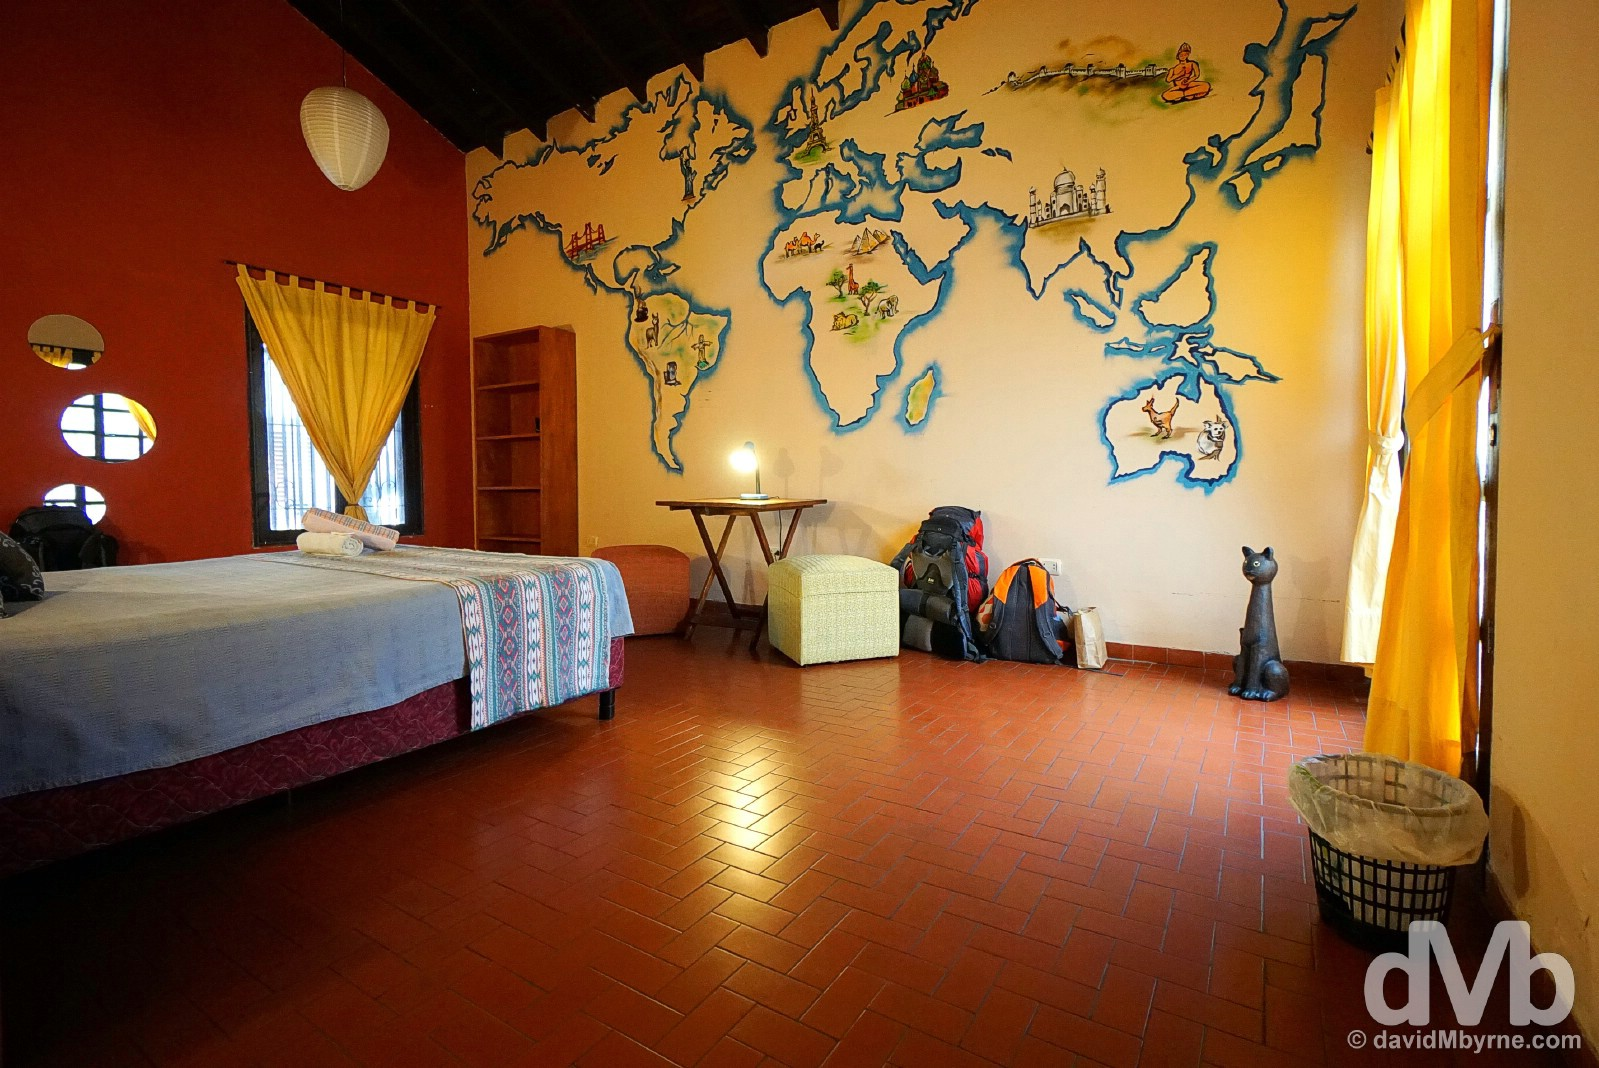 Home in Asuncion. Room 3 of El Nomada Hostel. I'd love this room even if not for the massive, wanderlust-inducing wall map. Asuncion, Paraguay. September 8, 2015.